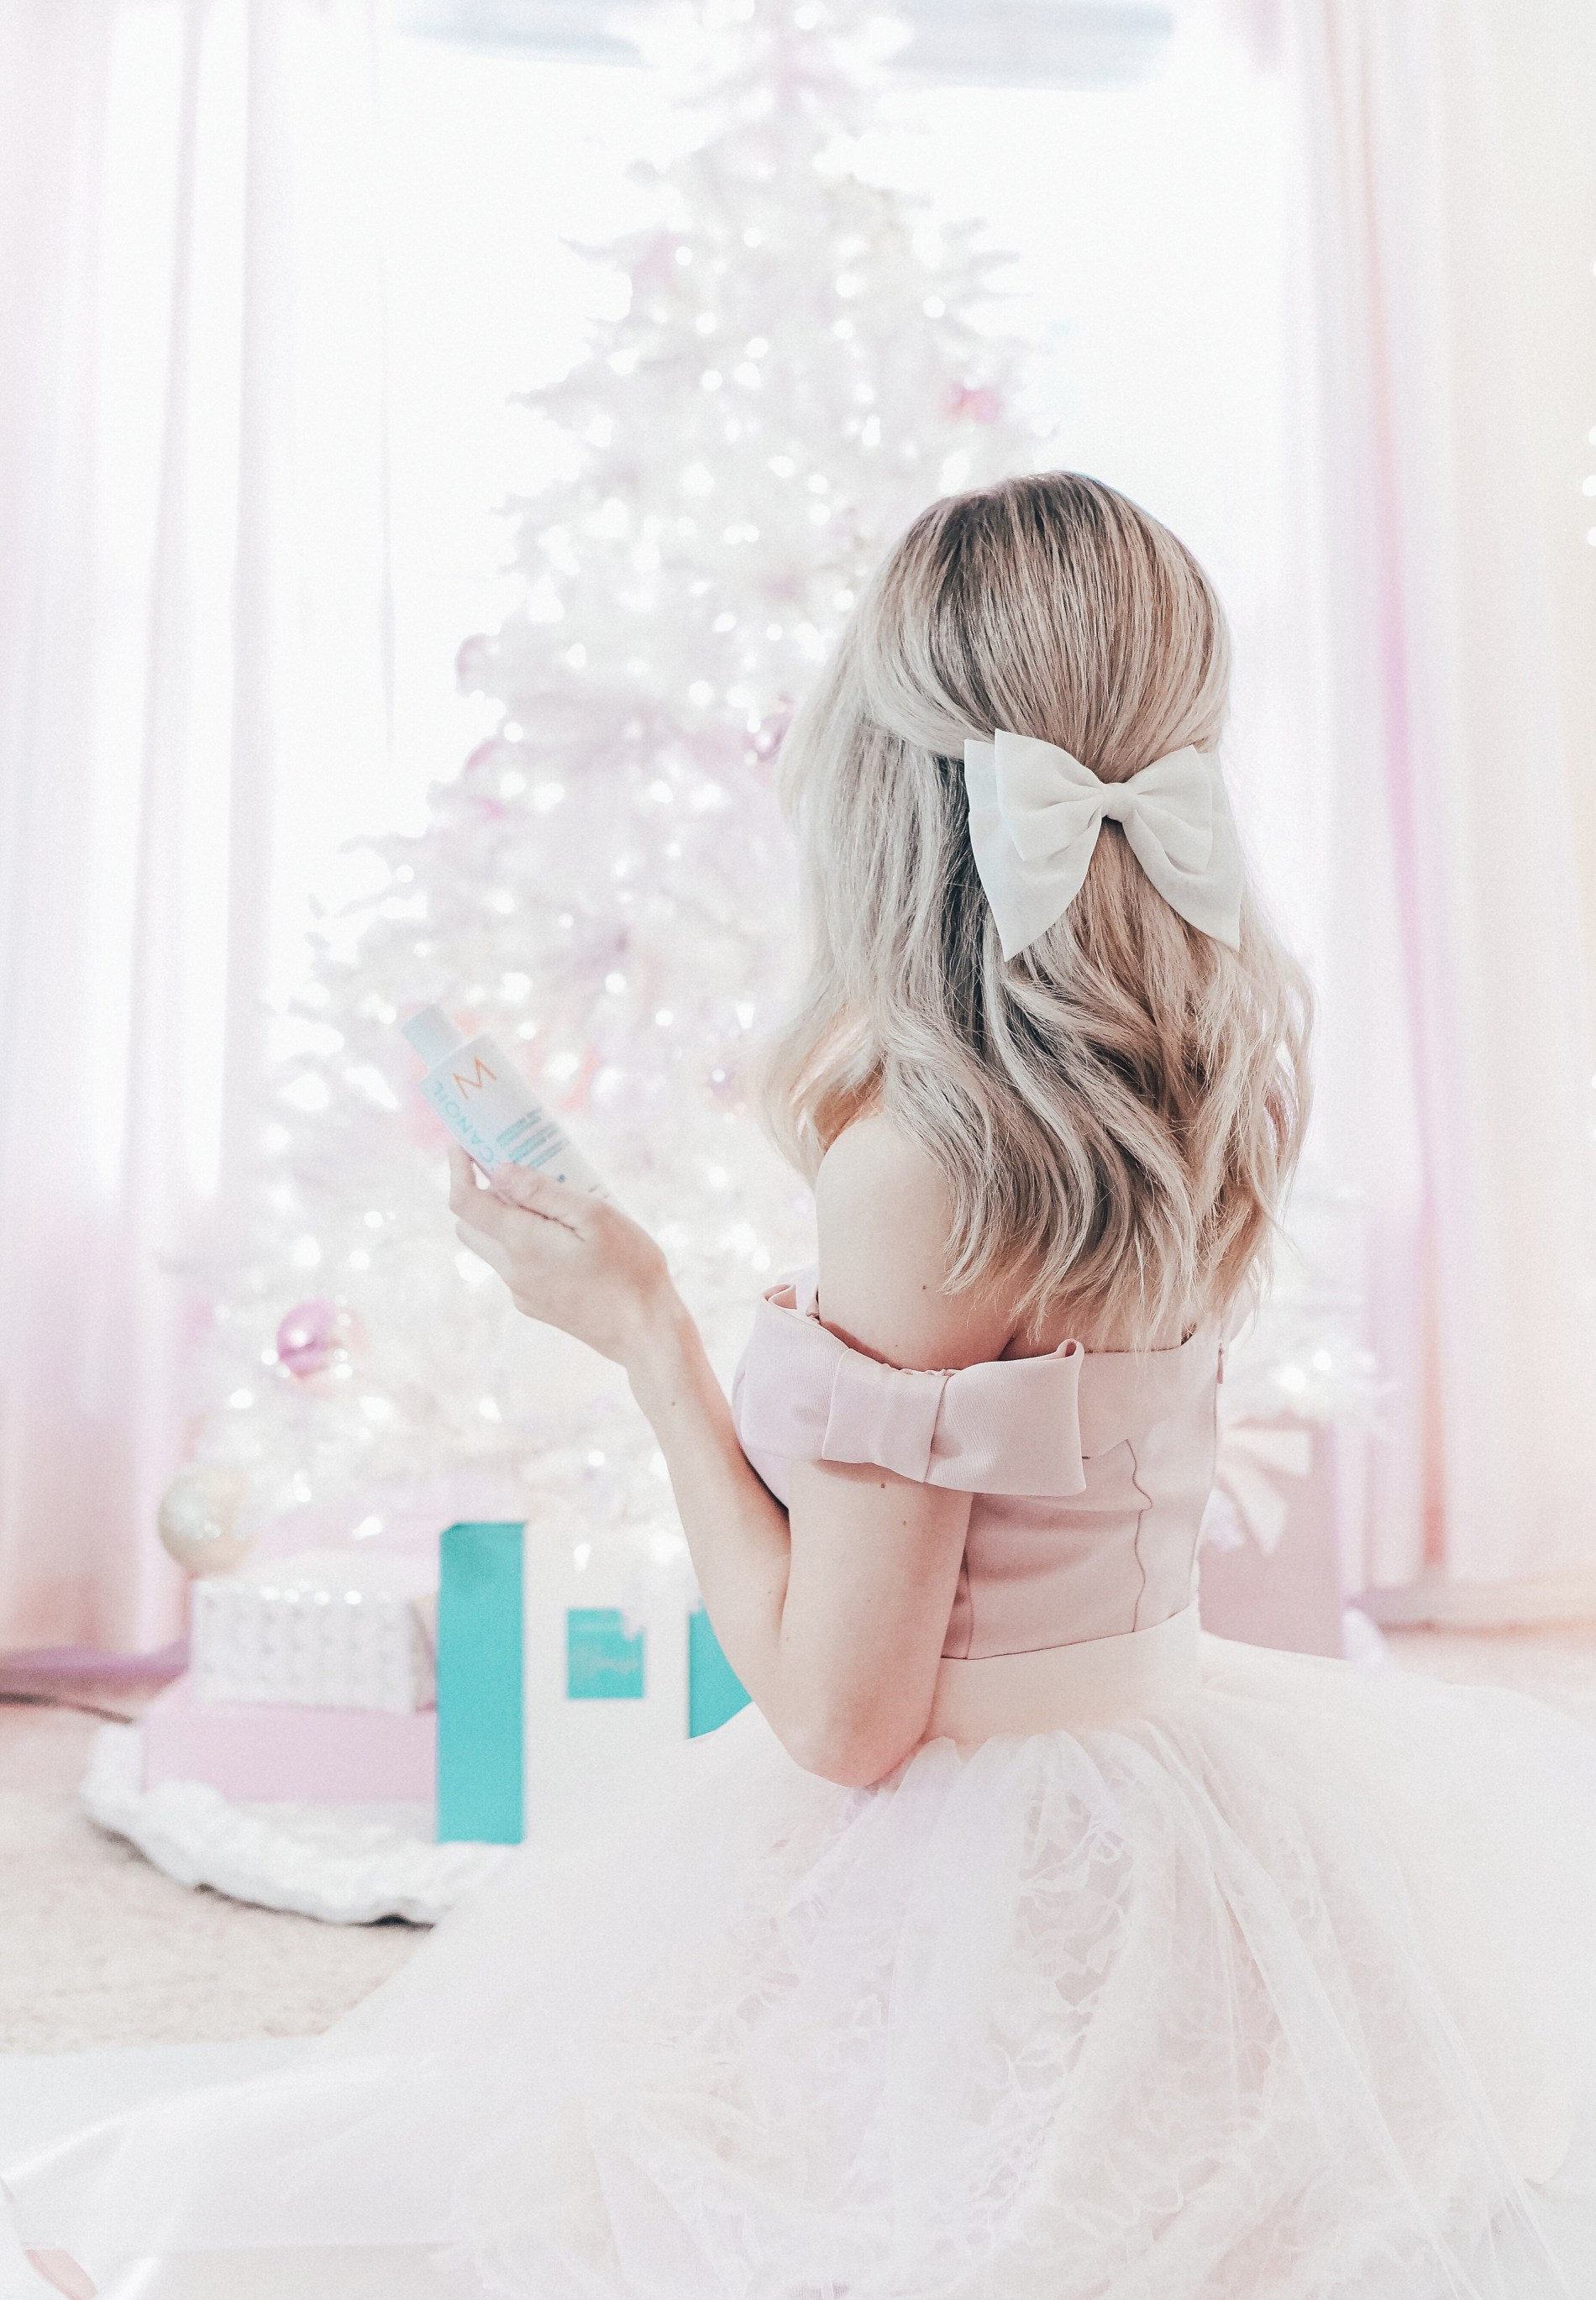 Hair Care Gifts That Should Be At The Top of Your Holiday Shopping List